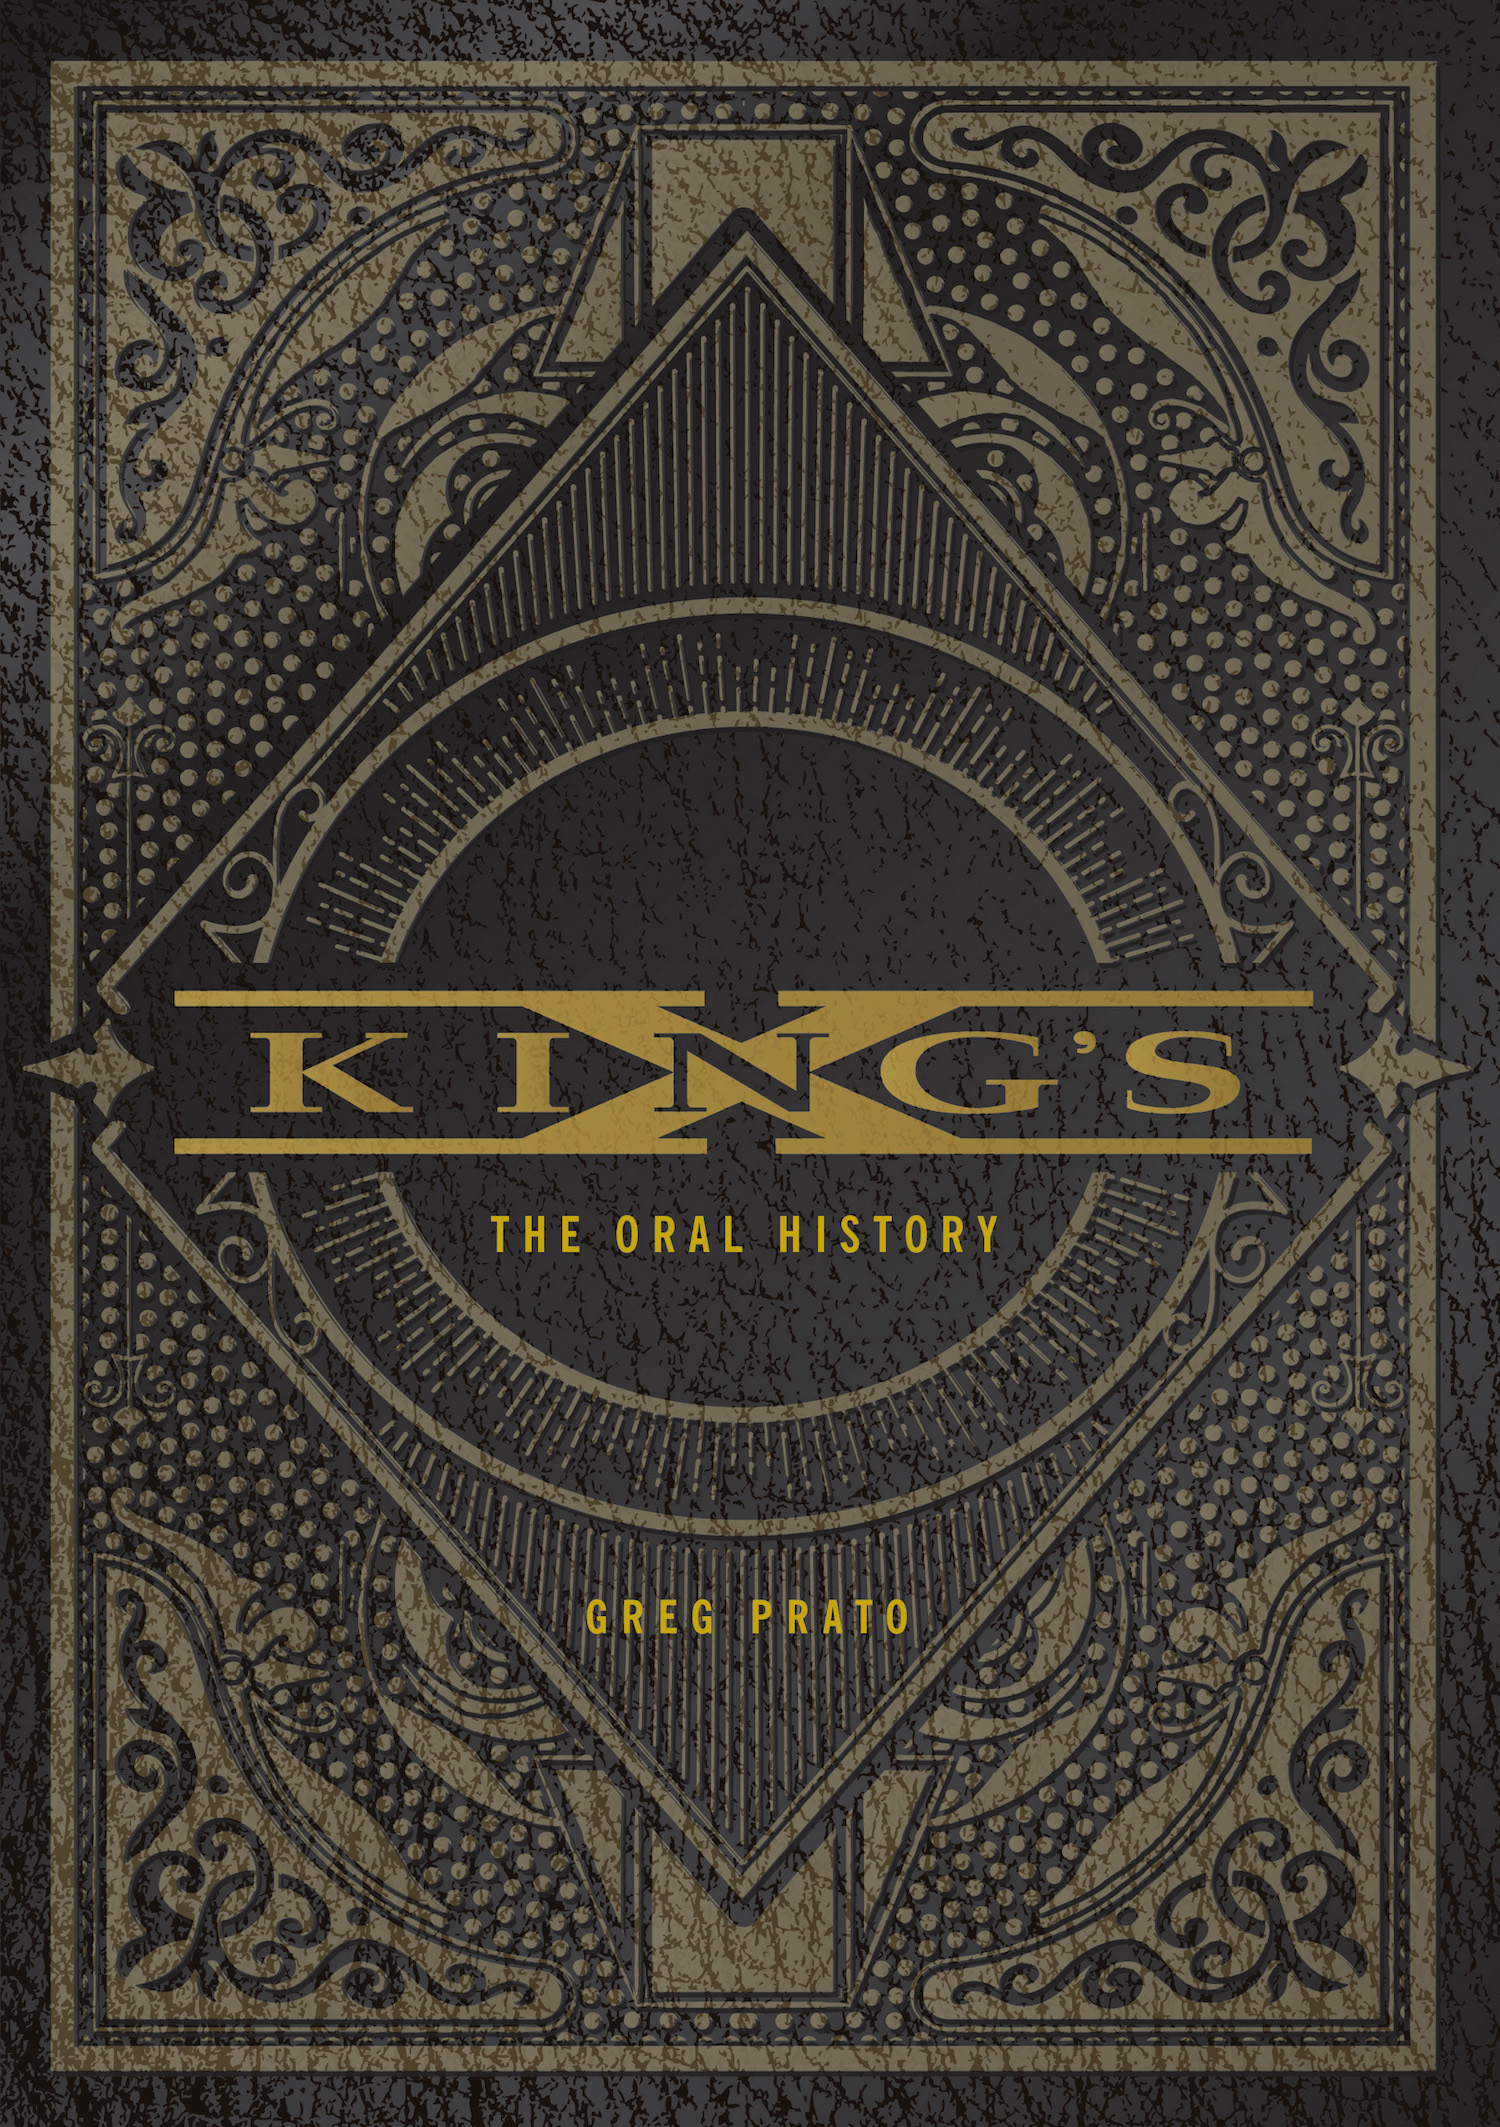 The Time King's X Opened for AC/DC - Excerpt from New Book